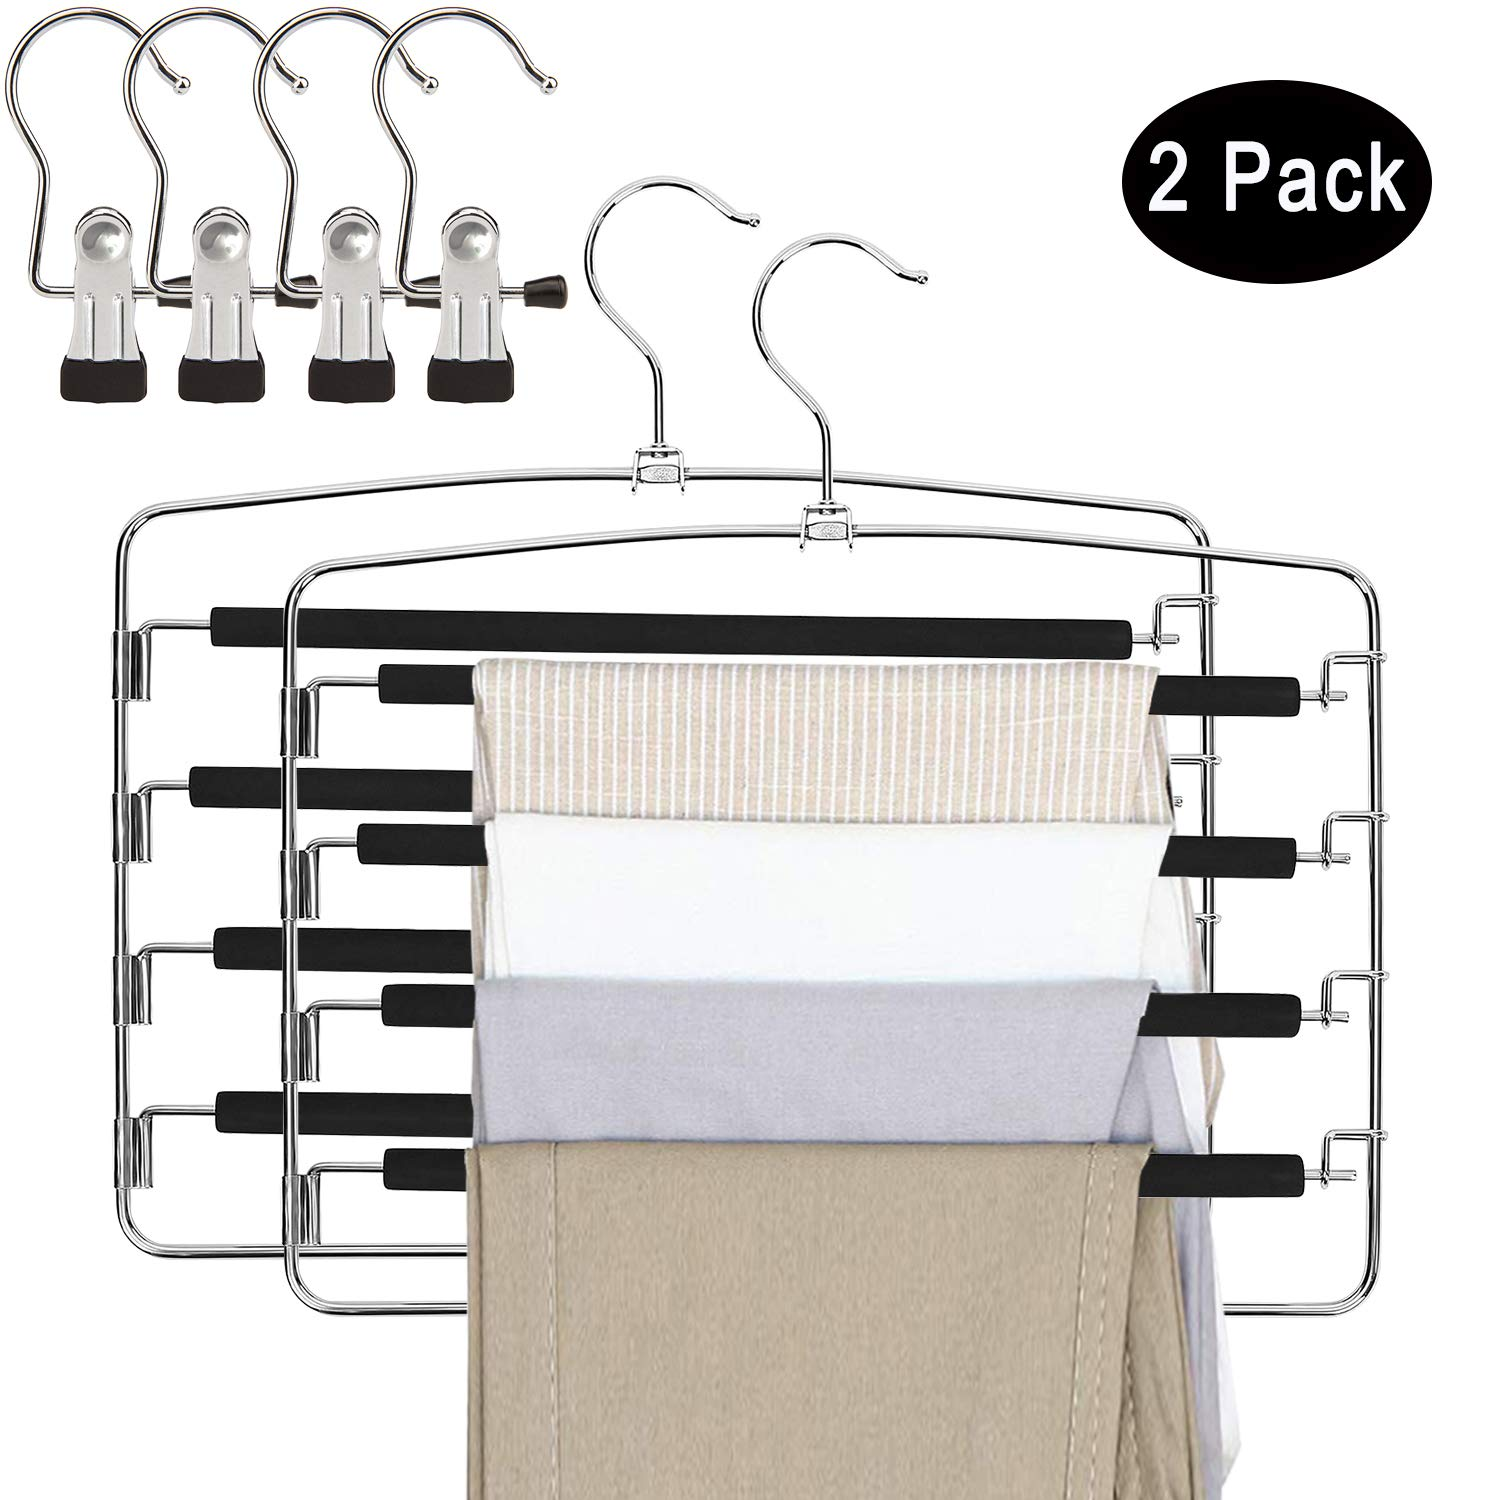 DUOFIRE Pants Hangers 2 Pack Jeans Hangers Multi Layers Metal Swing Arm Slacks Hangers Non Slip Space Saving Hanger Closet Storage Organizer for Pants Jeans Trousers Scarf (With 4 Portable clothespins) product image